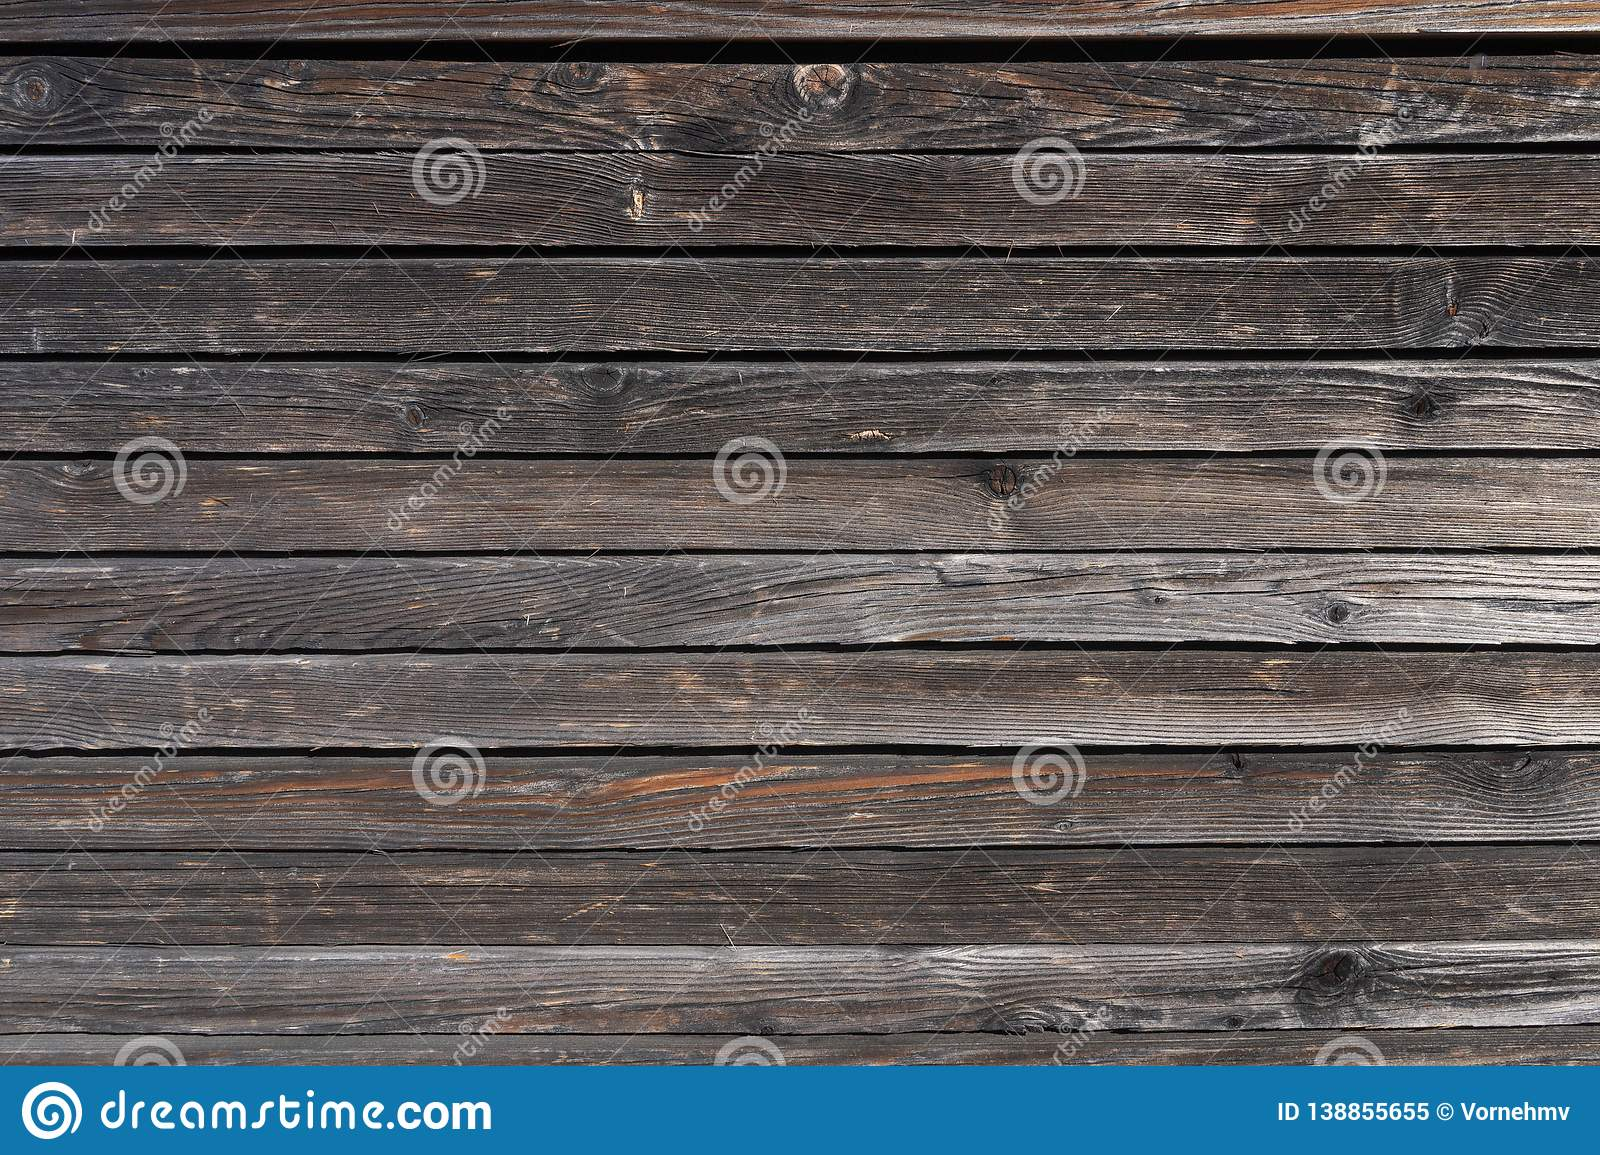 Surface of a heavily weathered planking of a facade made of wooden slats